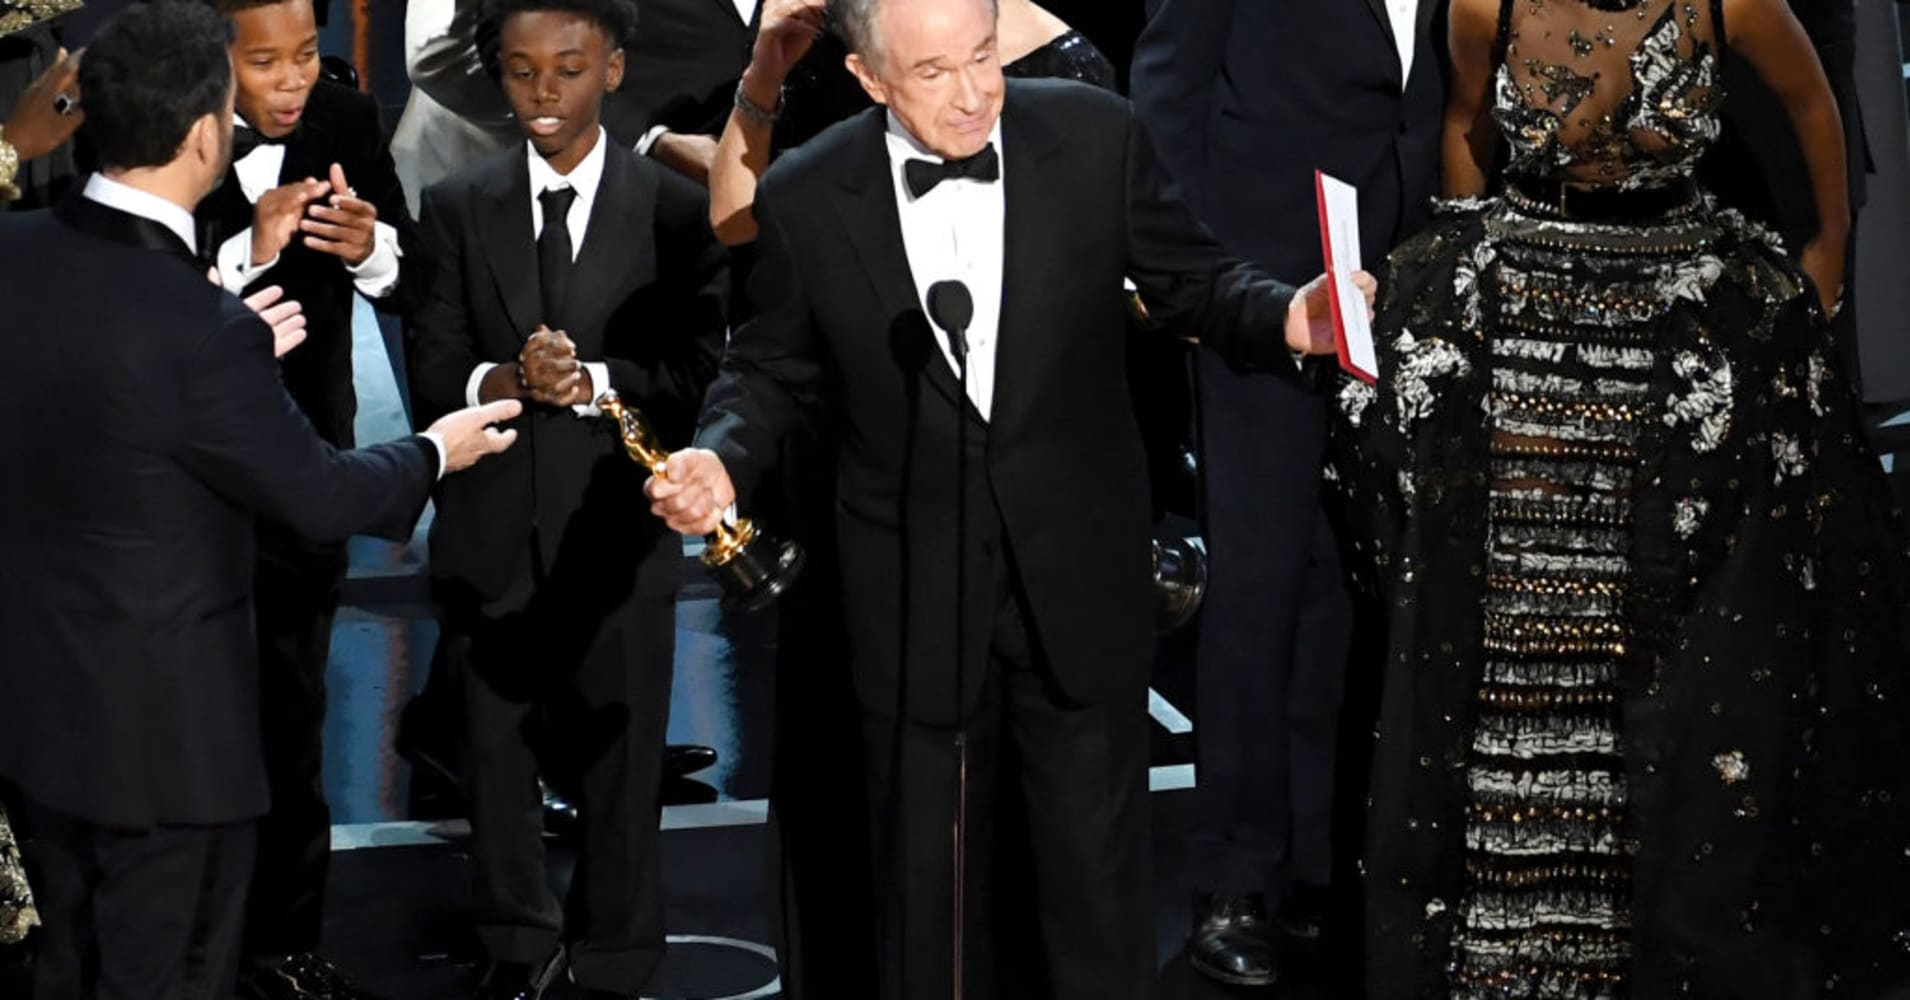 And The Oscar Loser Ispwc Apologizes For Its Role In Best Picture Drama